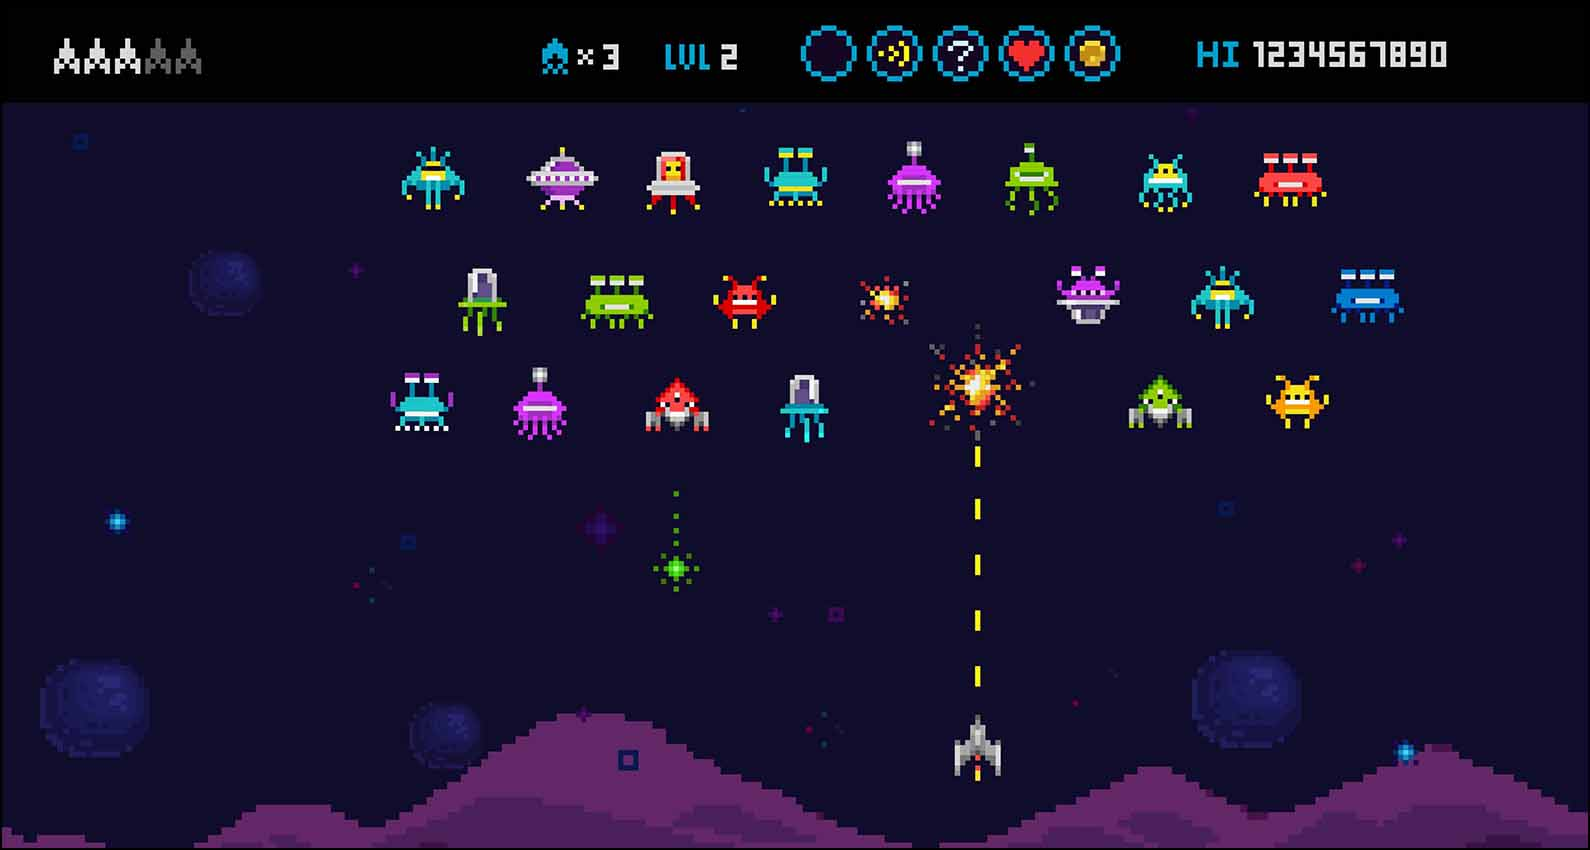 Cyber security is a bit like space invaders!